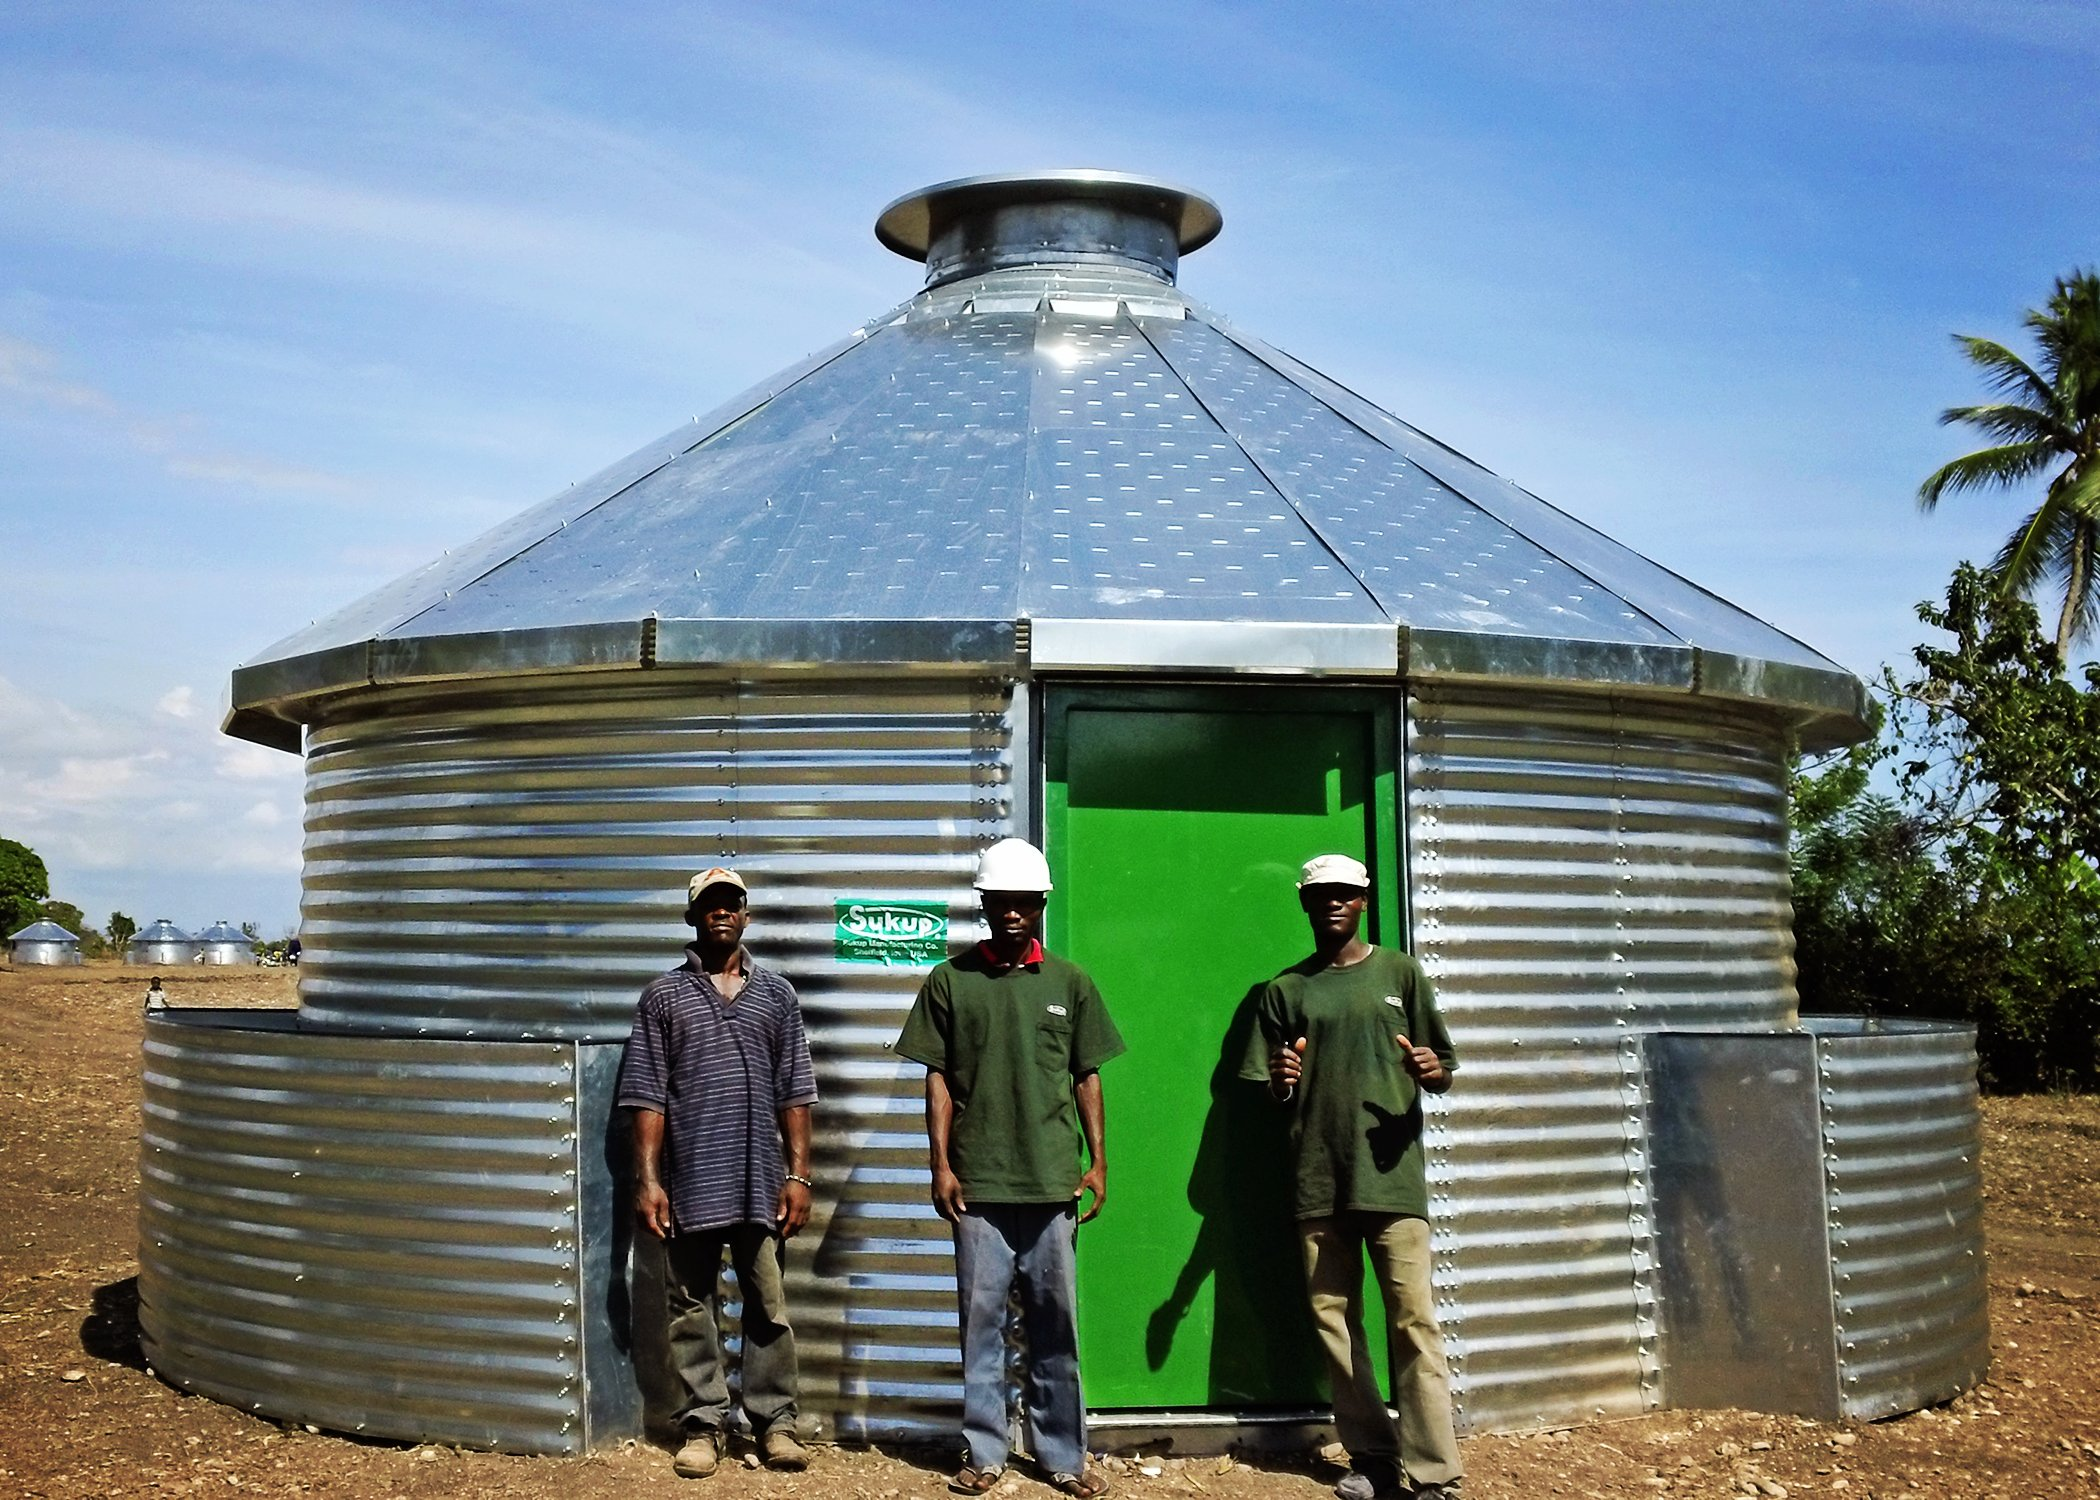 Grain bin homes saving lives in Haiti - Ohio Ag Net | Ohio ...